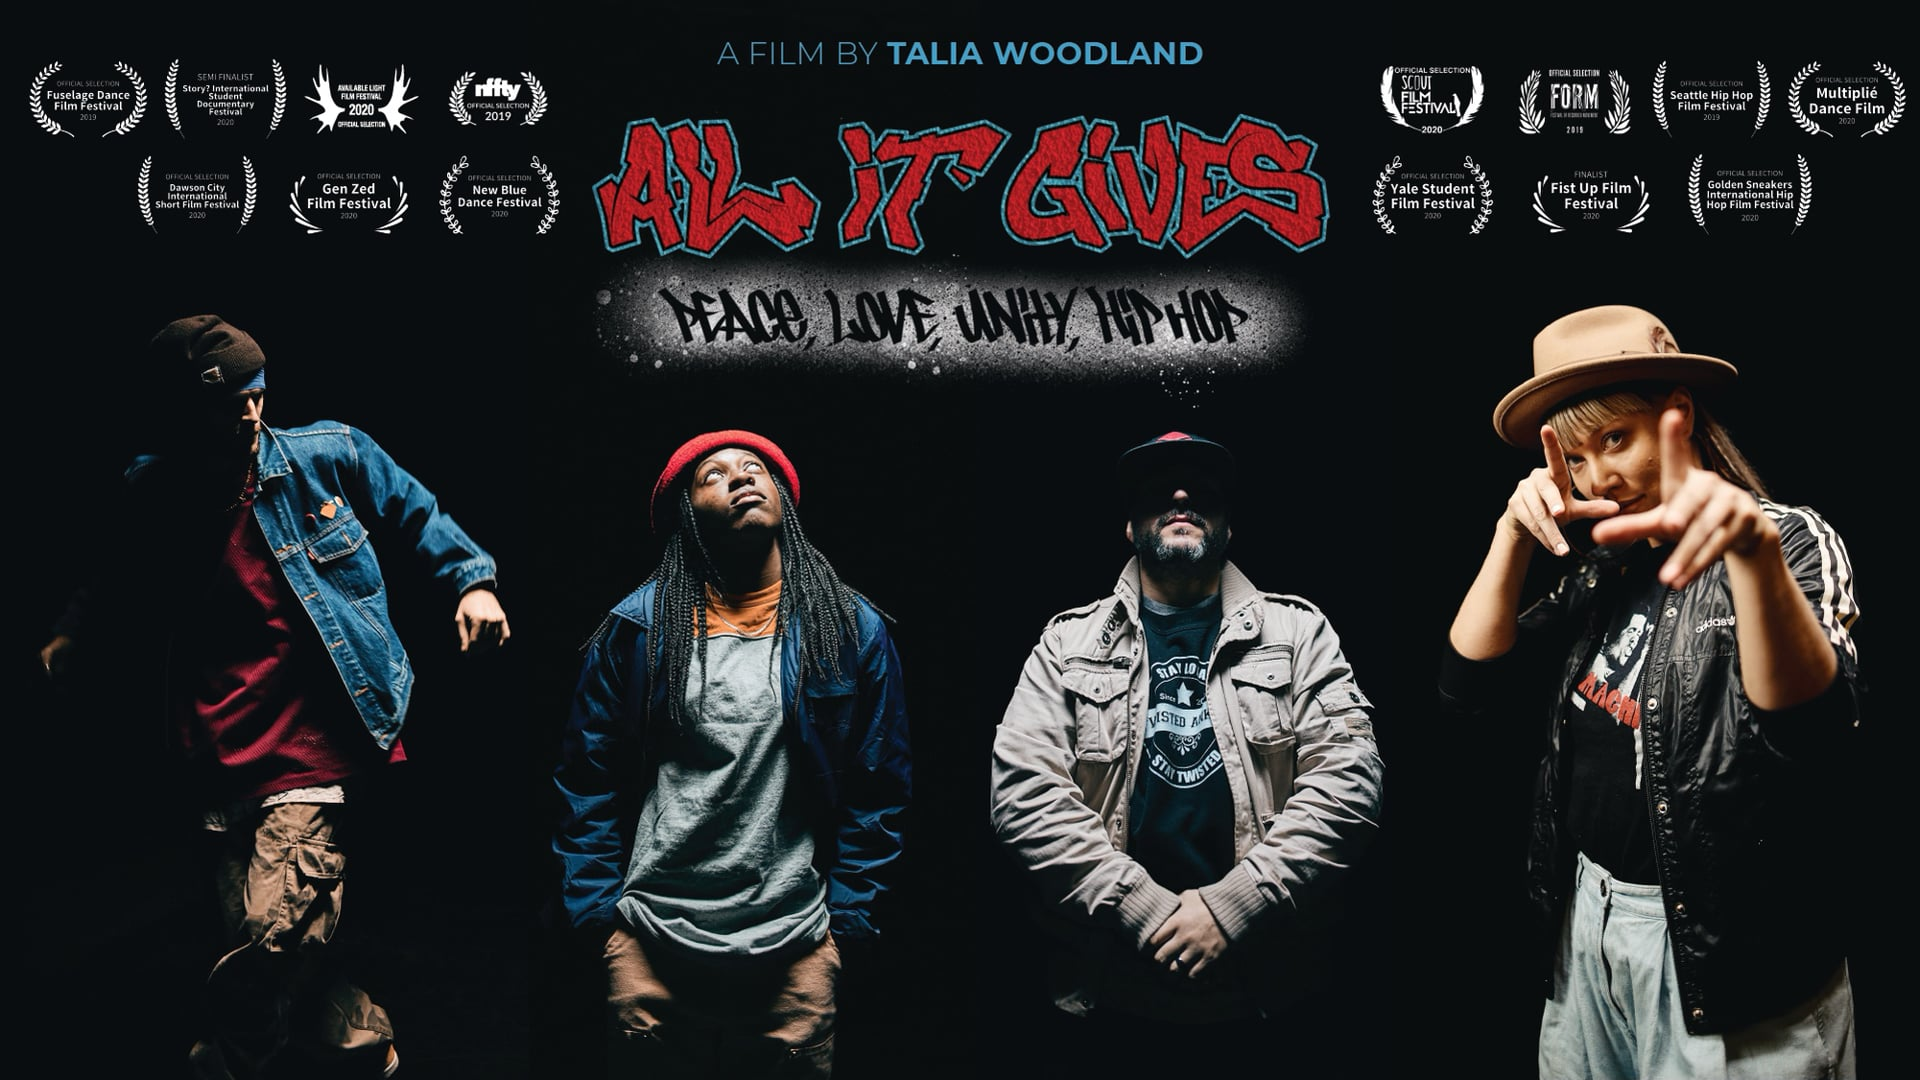 ALL IT GIVES Official Trailer